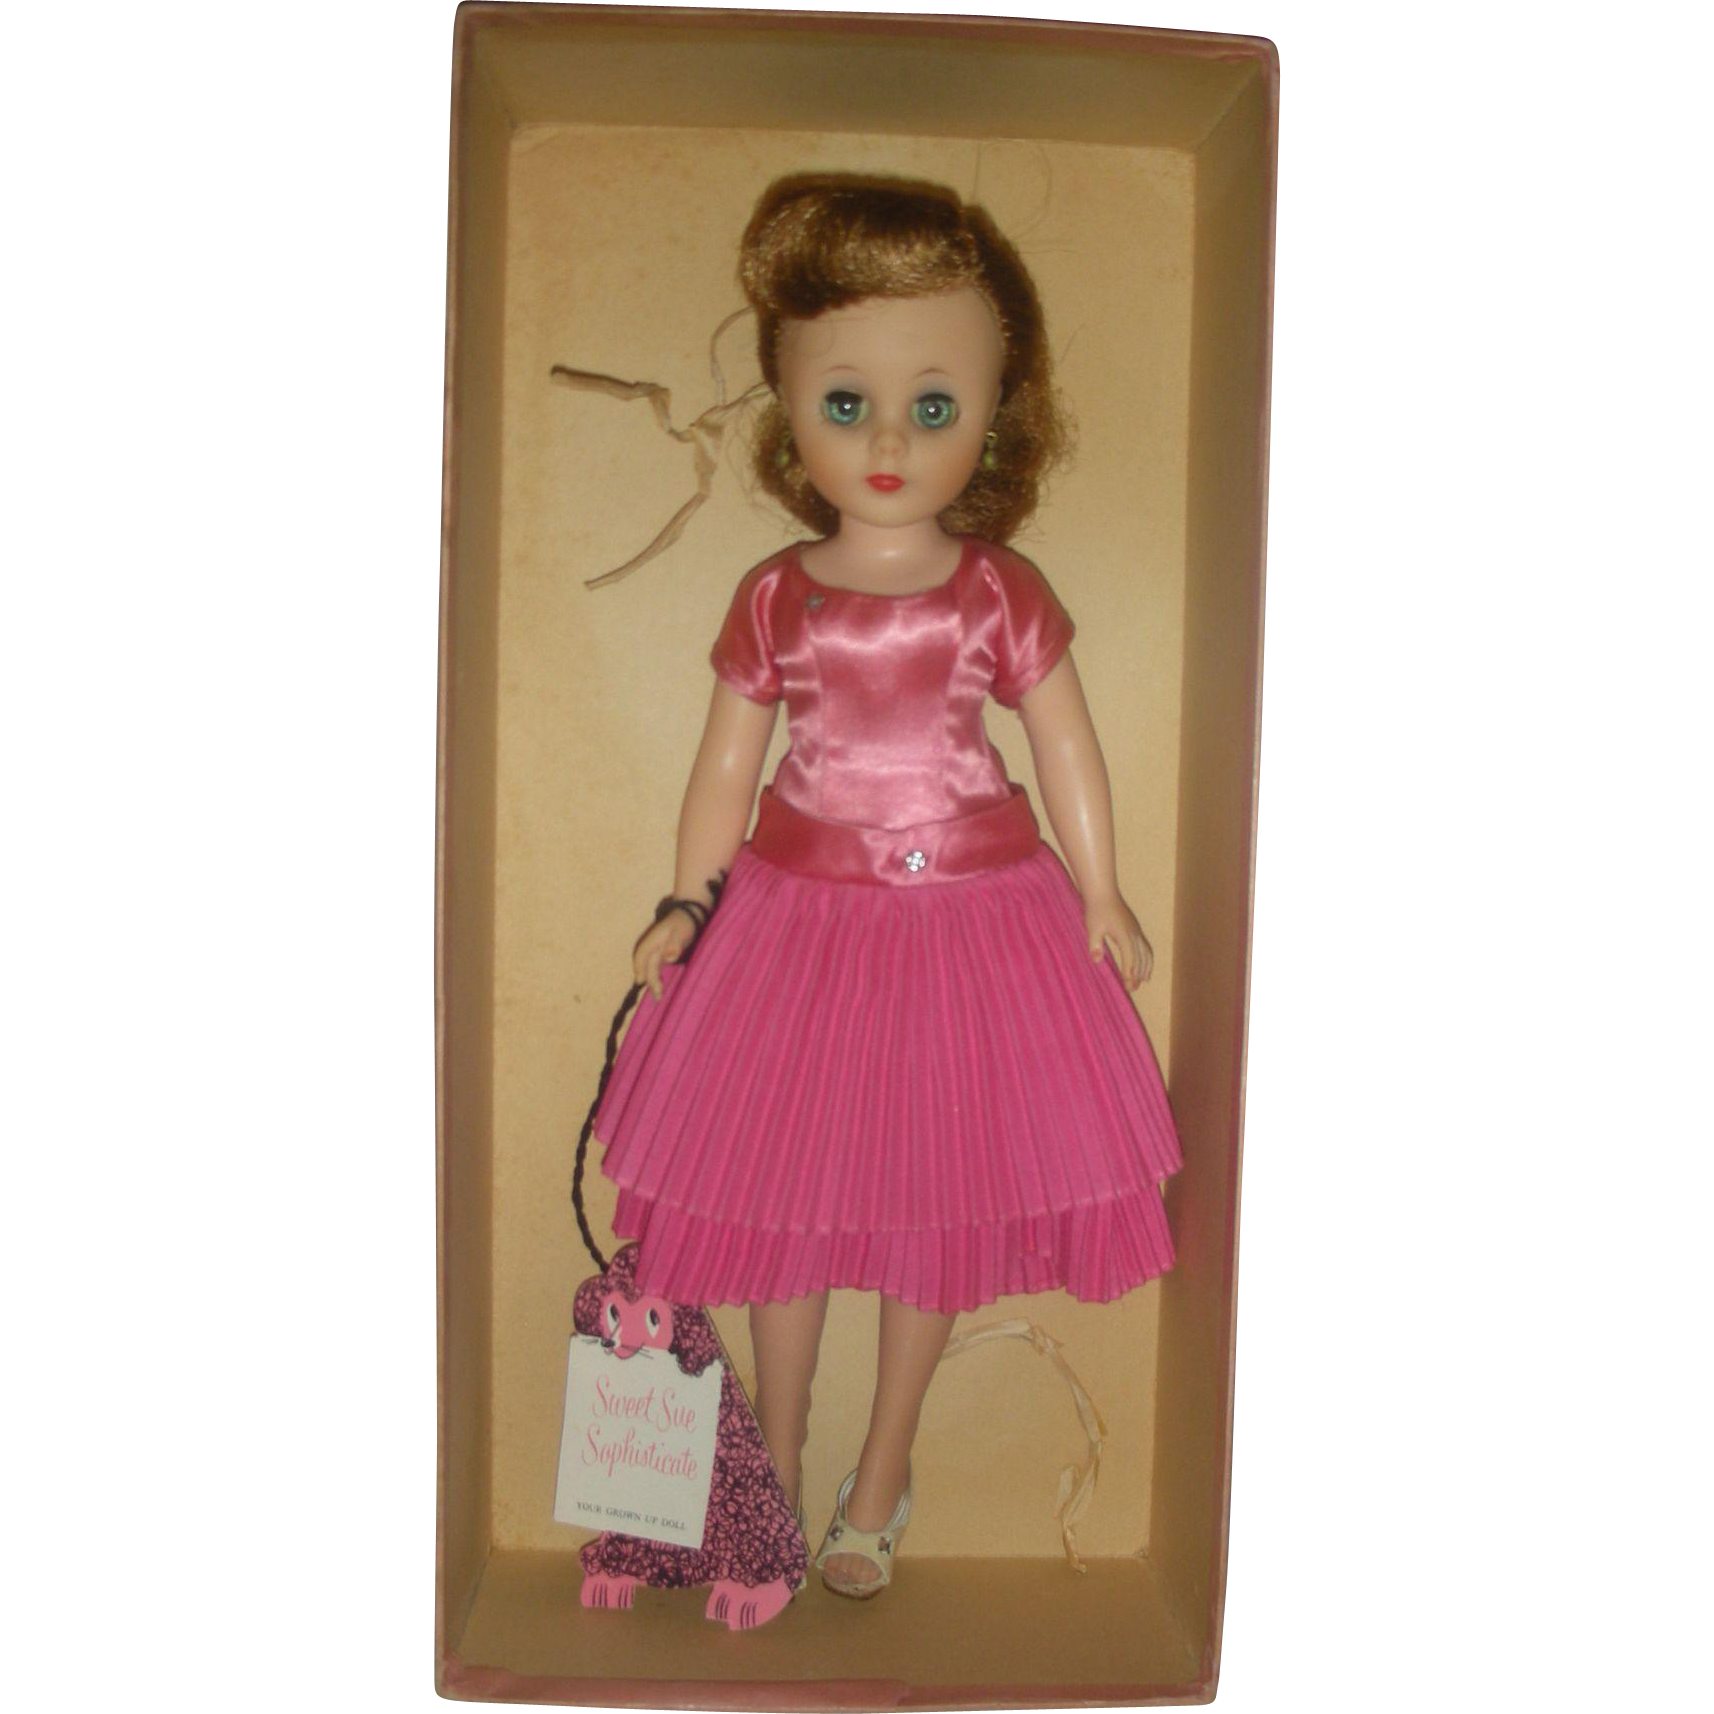 American Character 1950s Sweet Sue Sophisticate fashion Doll 12 inch Mint in Box Tea Time